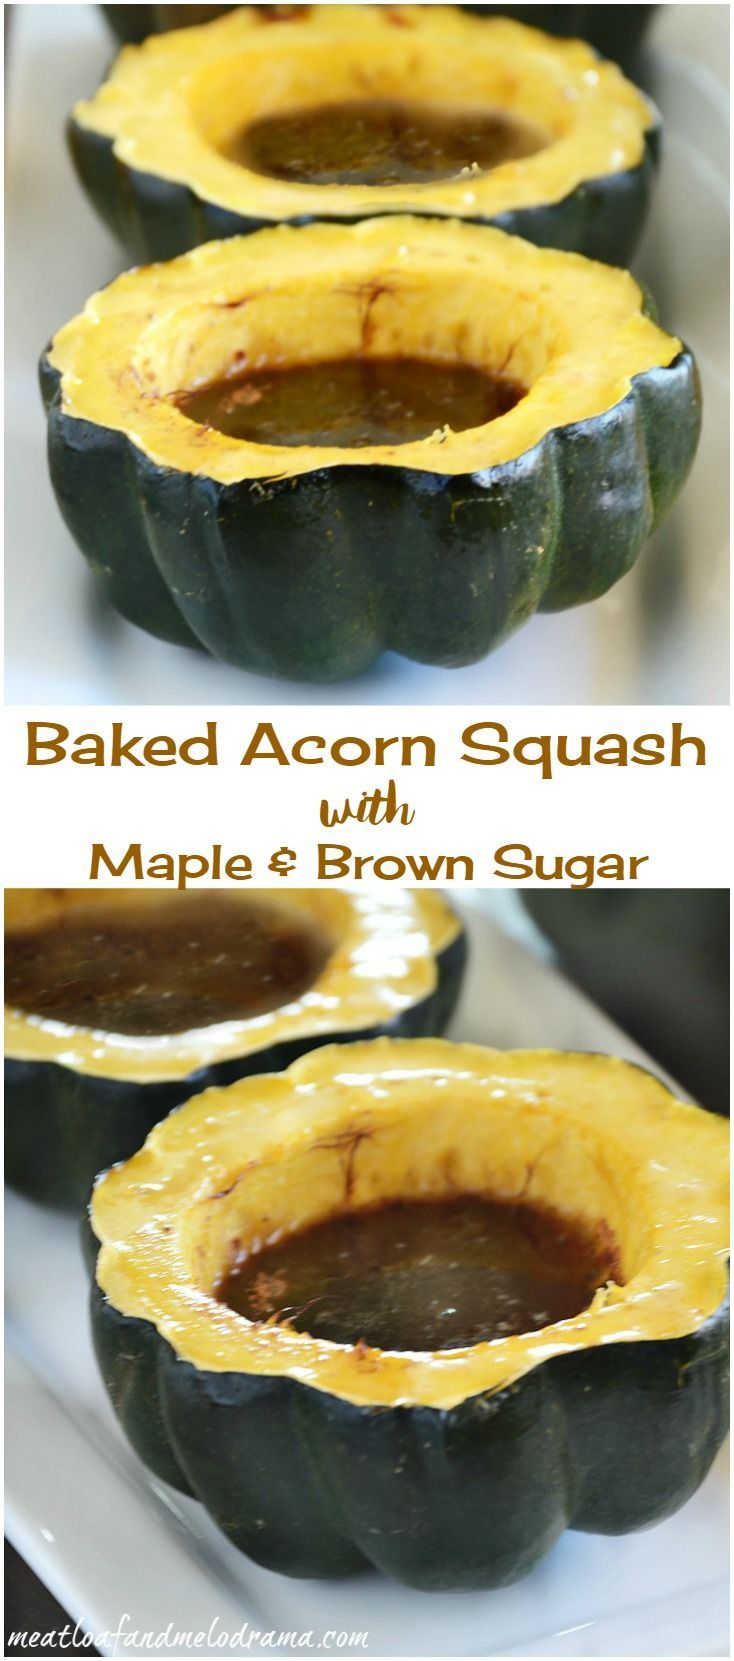 Baked Acorn Squash Recipe Acorn Squash Recipes Food Recipes